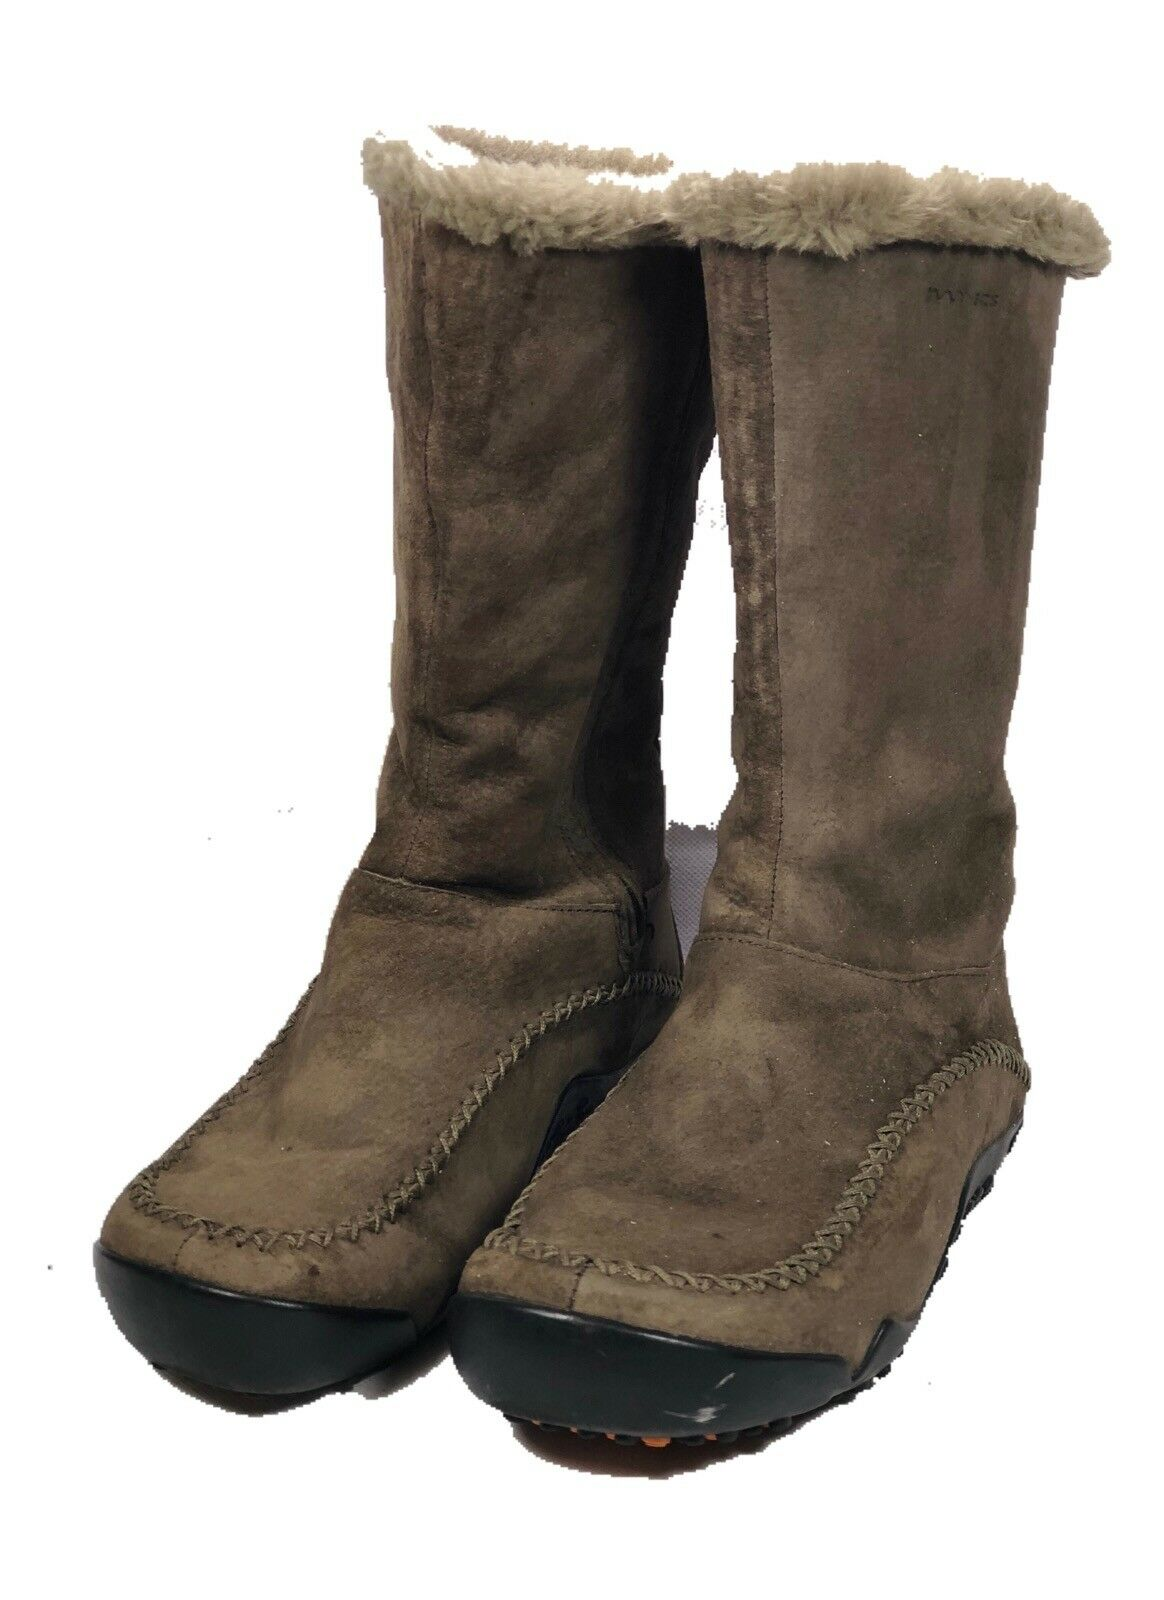 Wolverine Leather Winter Boots Size 7M